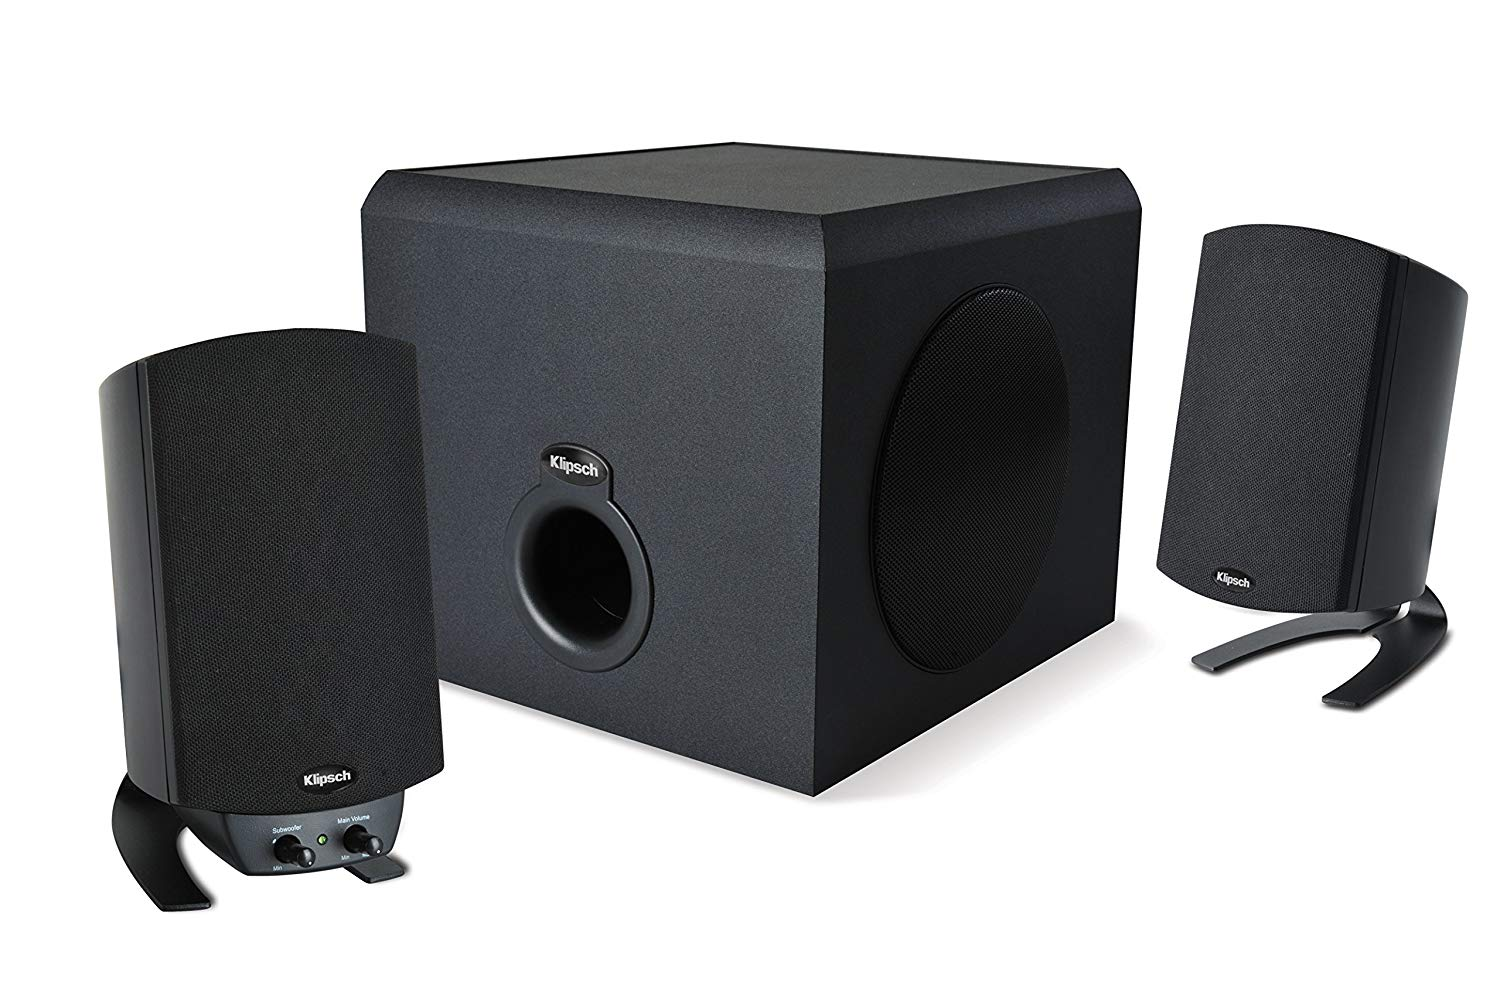 Best Computer Speakers Of 2018 The Master Switch Hi Fi Pc Speaker System 8 Klipsch Promedia 21 109